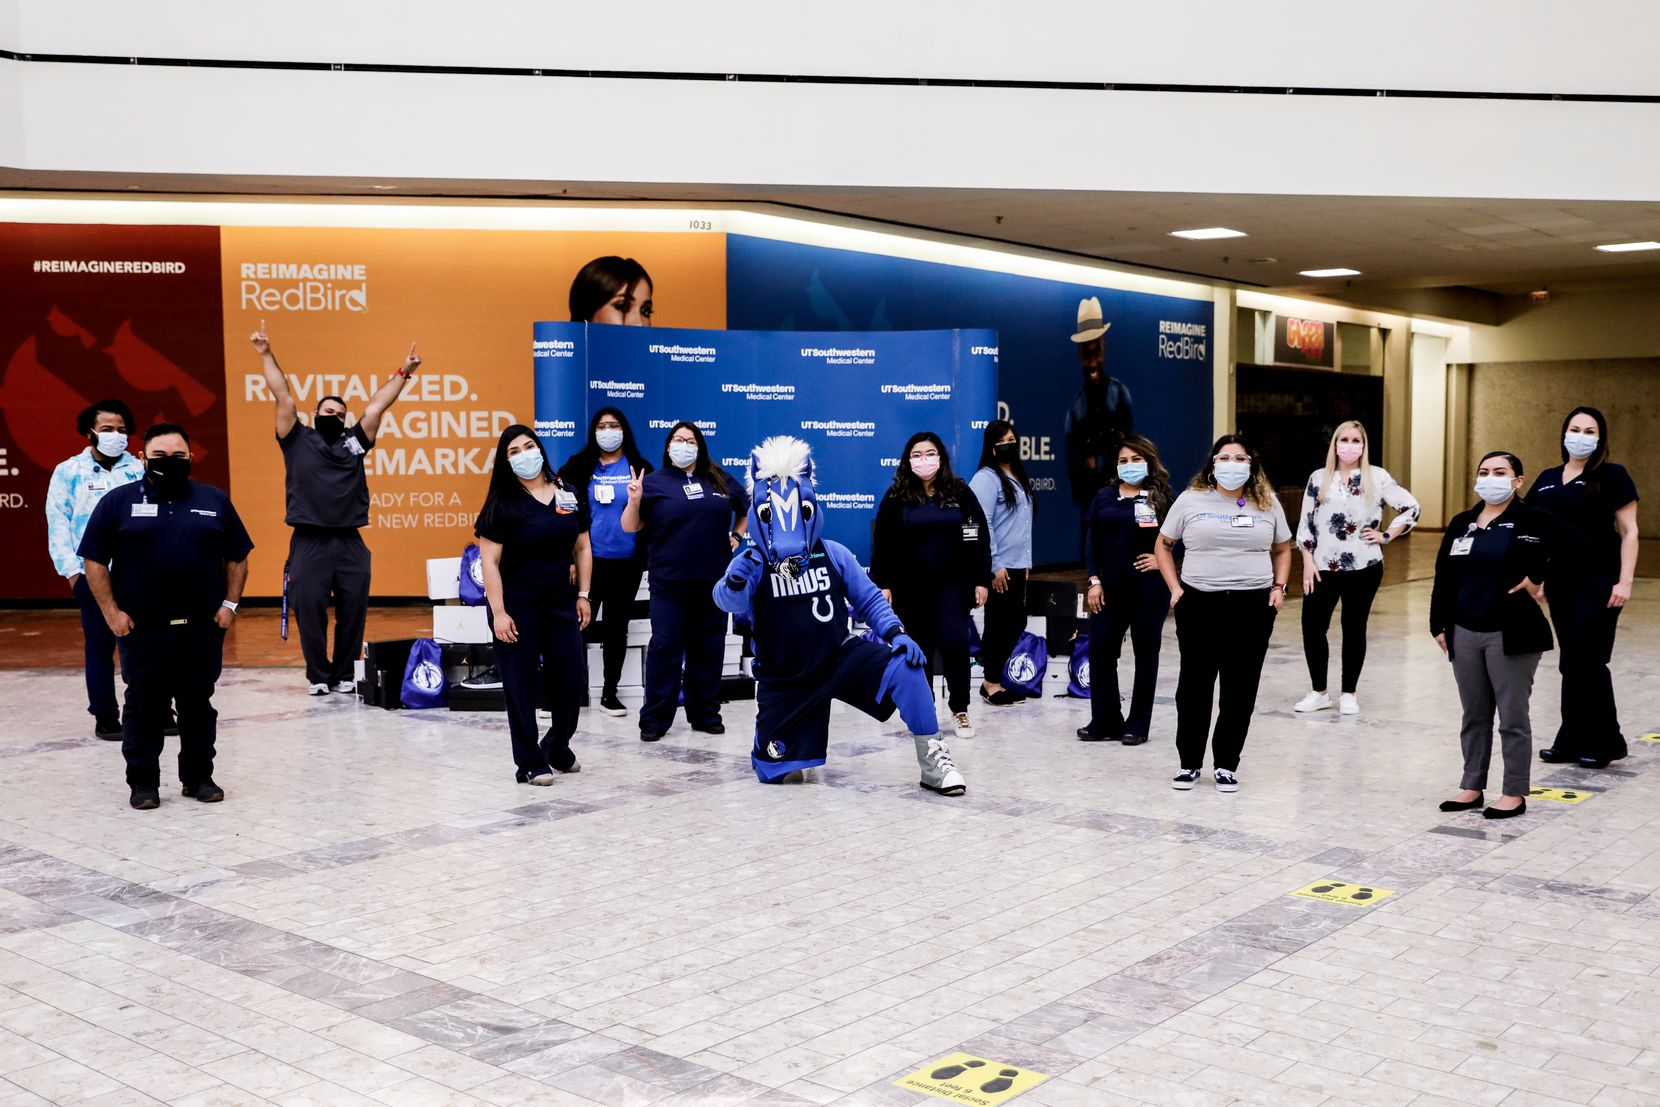 Dallas Mavericks mascot Champ, poses with UT Southwestern healthcare workers after they received a donation of 100 pairs of Air Jordan 1s from Mavs' star Luka Doncic.